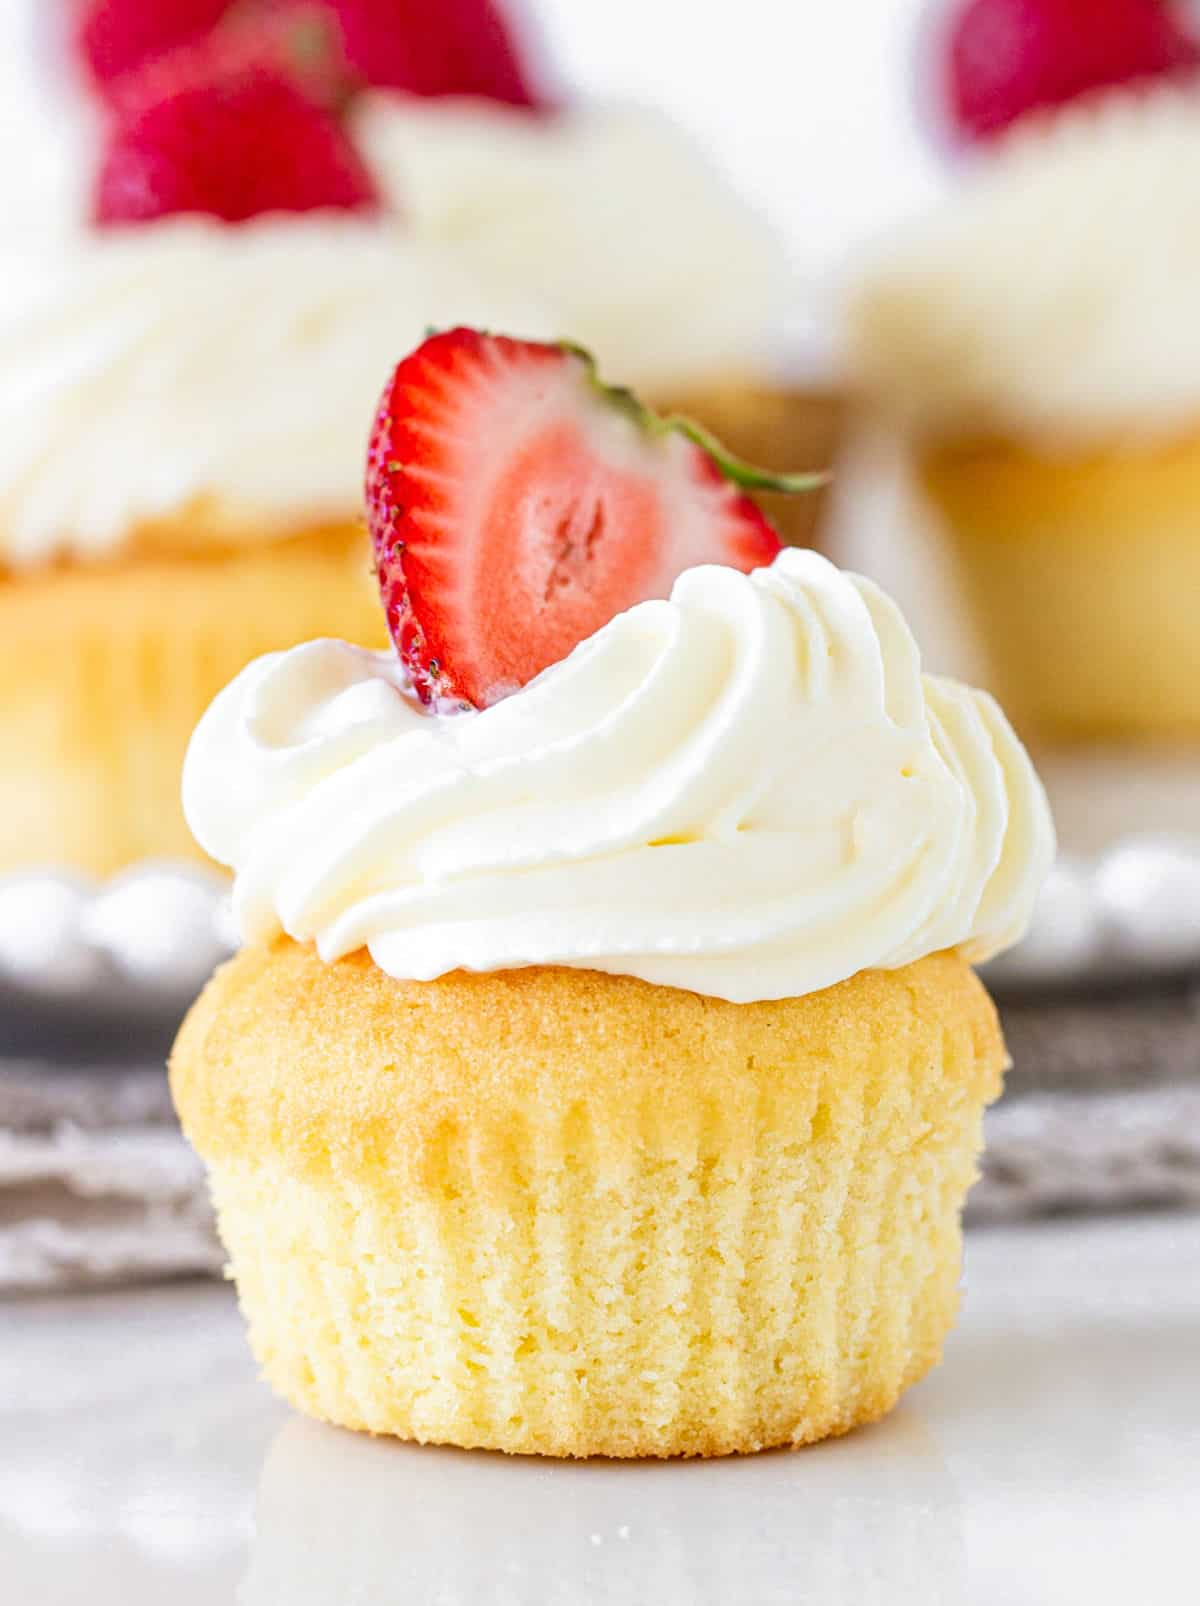 Single strawberry cream vanilla cupcake on white surface, more cupcakes blurred in background